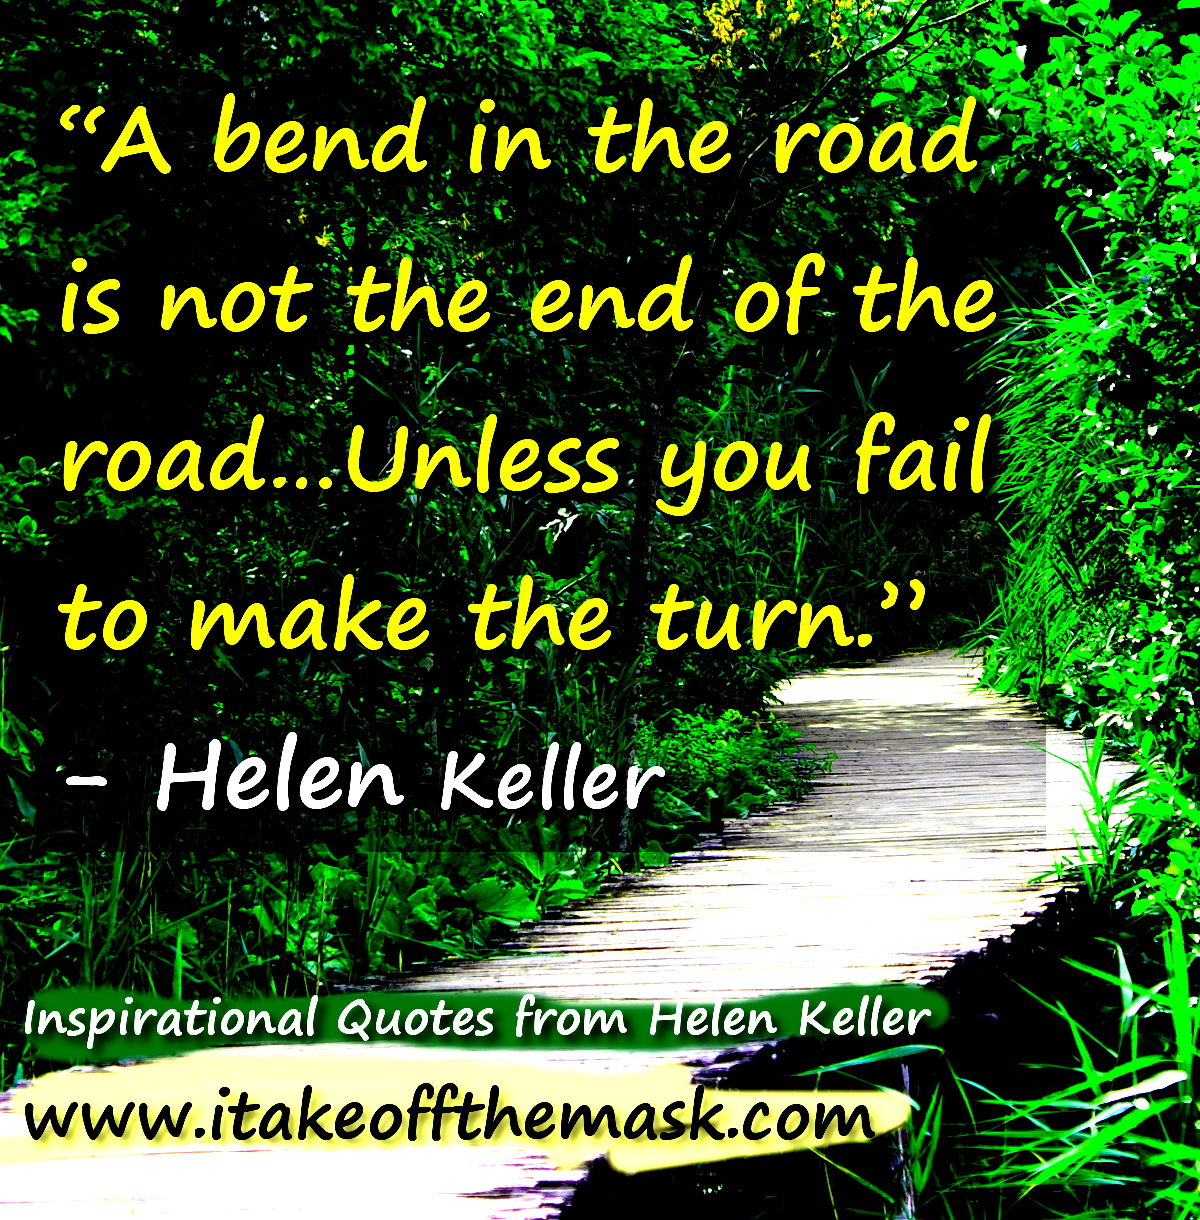 Inspirational quotes from helen keller best life quotes poems bendinroad2 altavistaventures Image collections